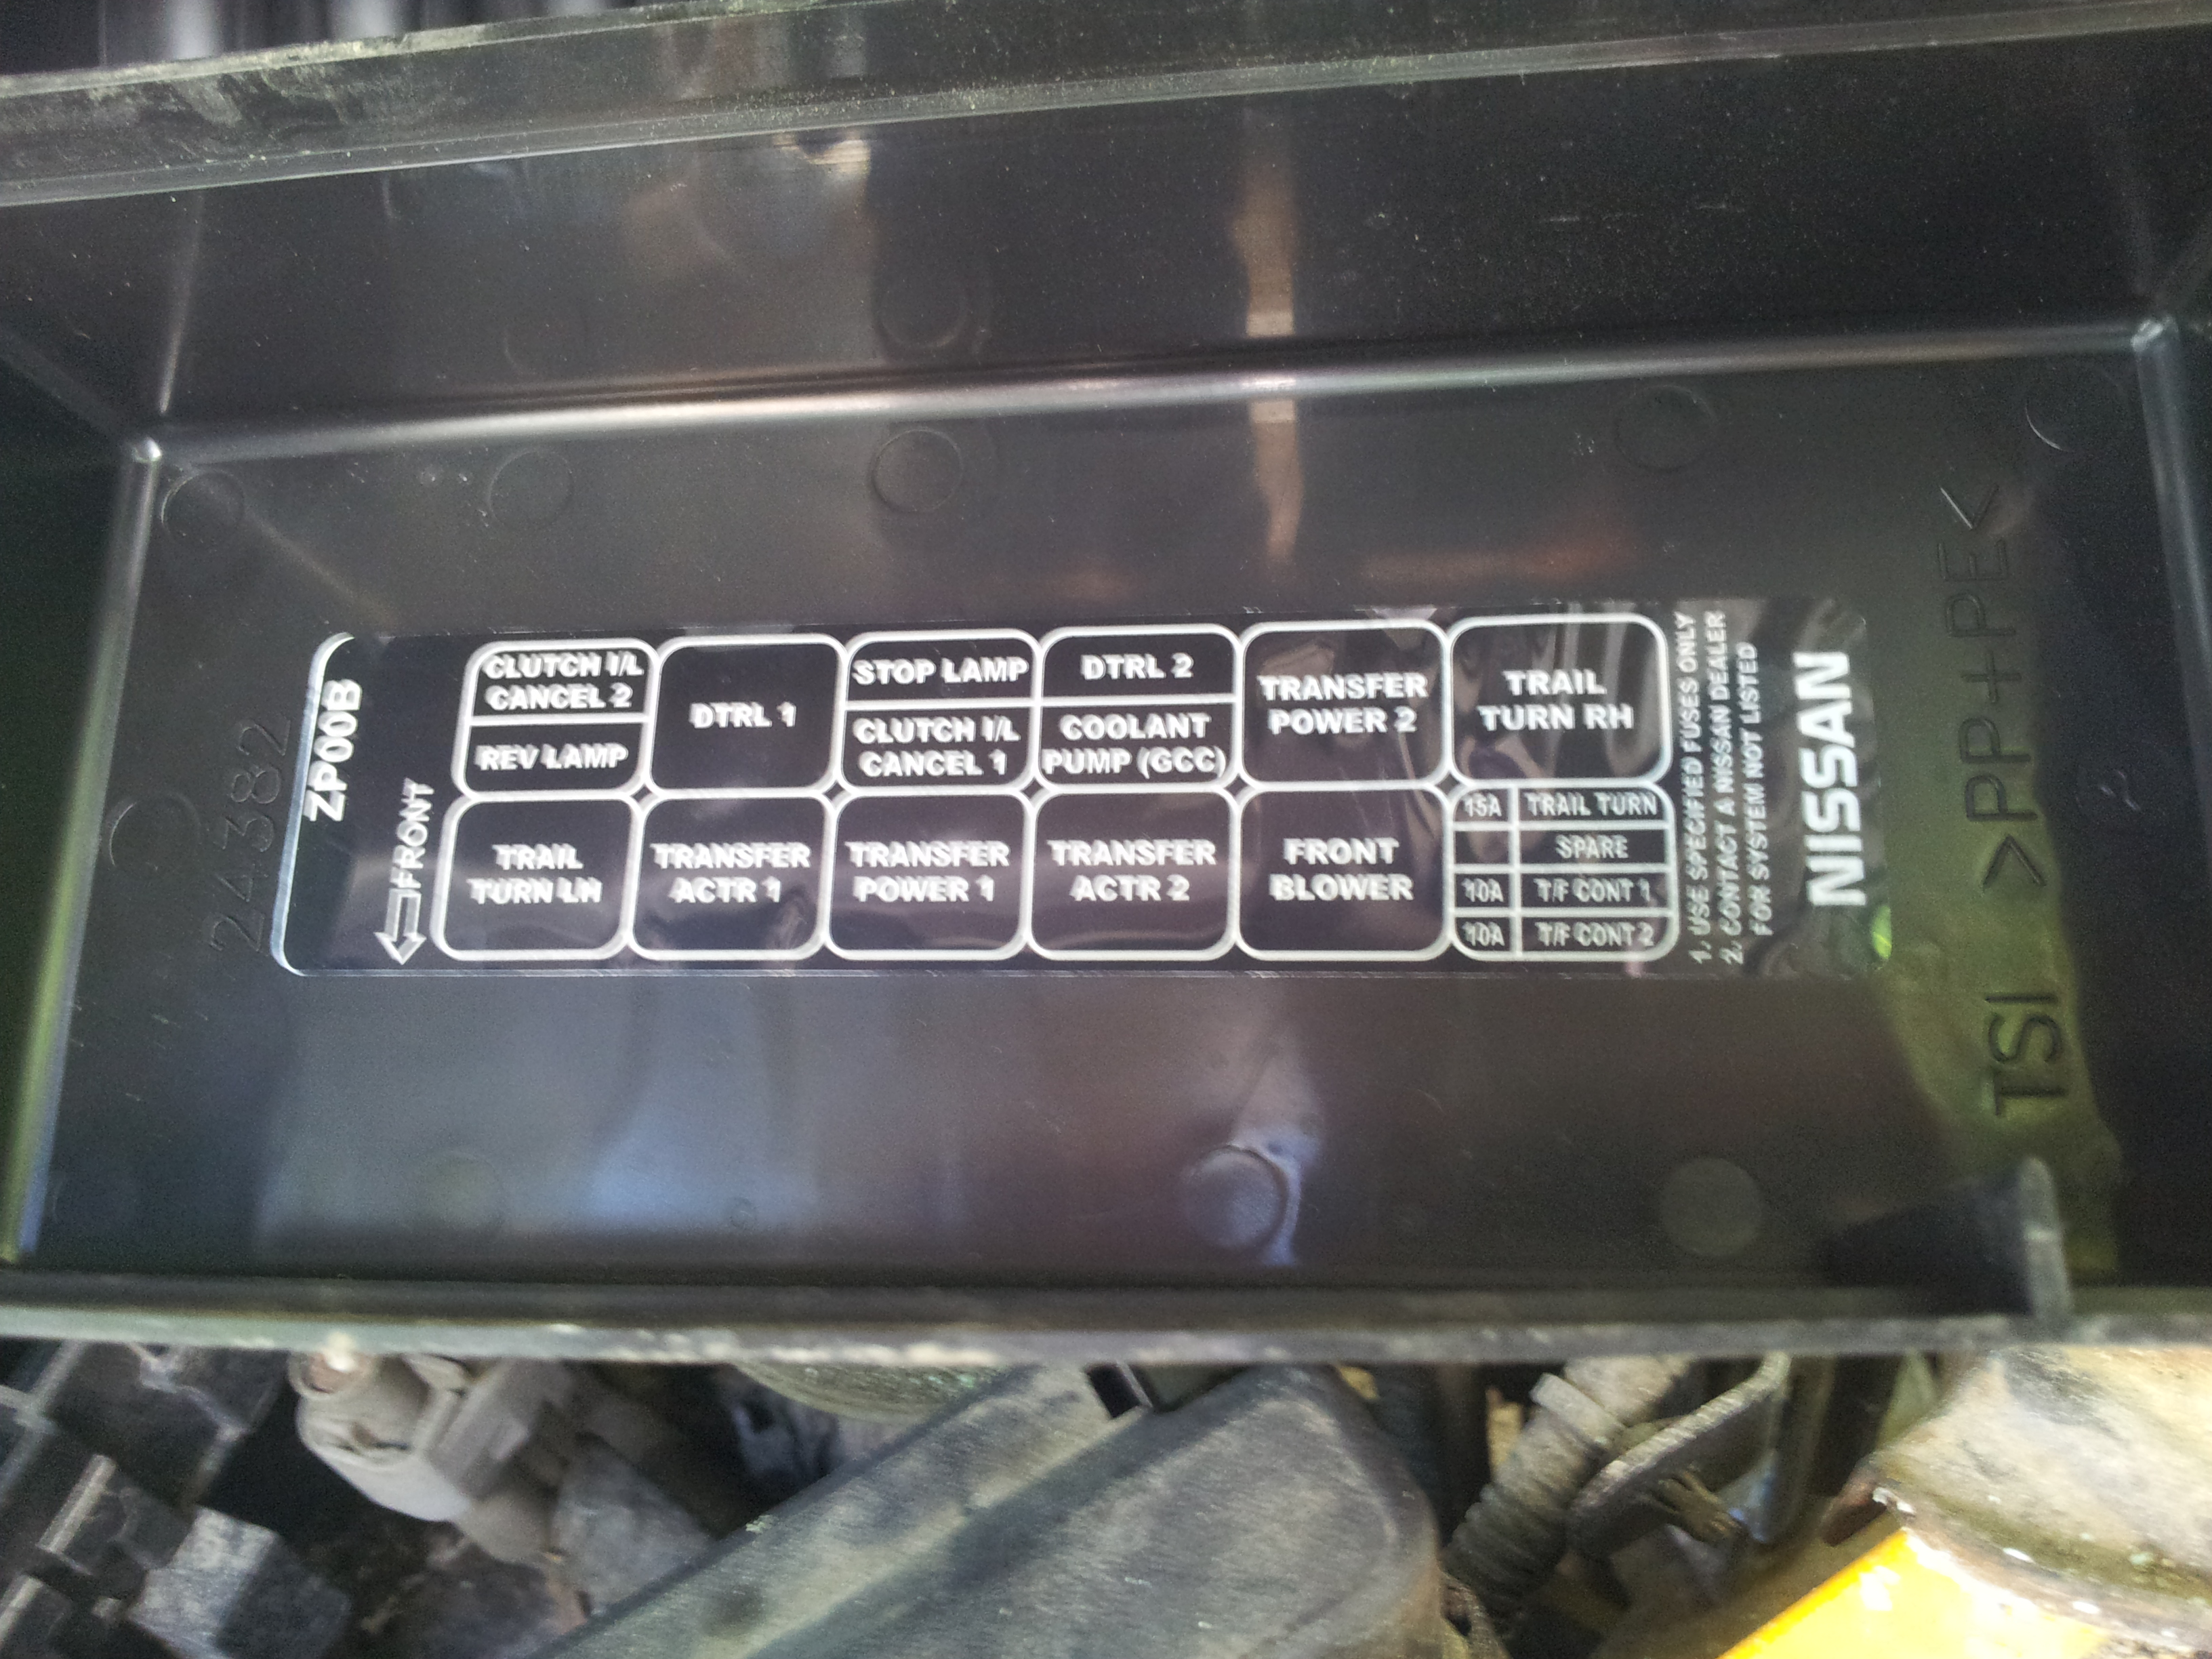 2005 nissan sentra fuse box location 7bbc44 2005 nissan maxima engine fuse box diagram wiring resources  7bbc44 2005 nissan maxima engine fuse